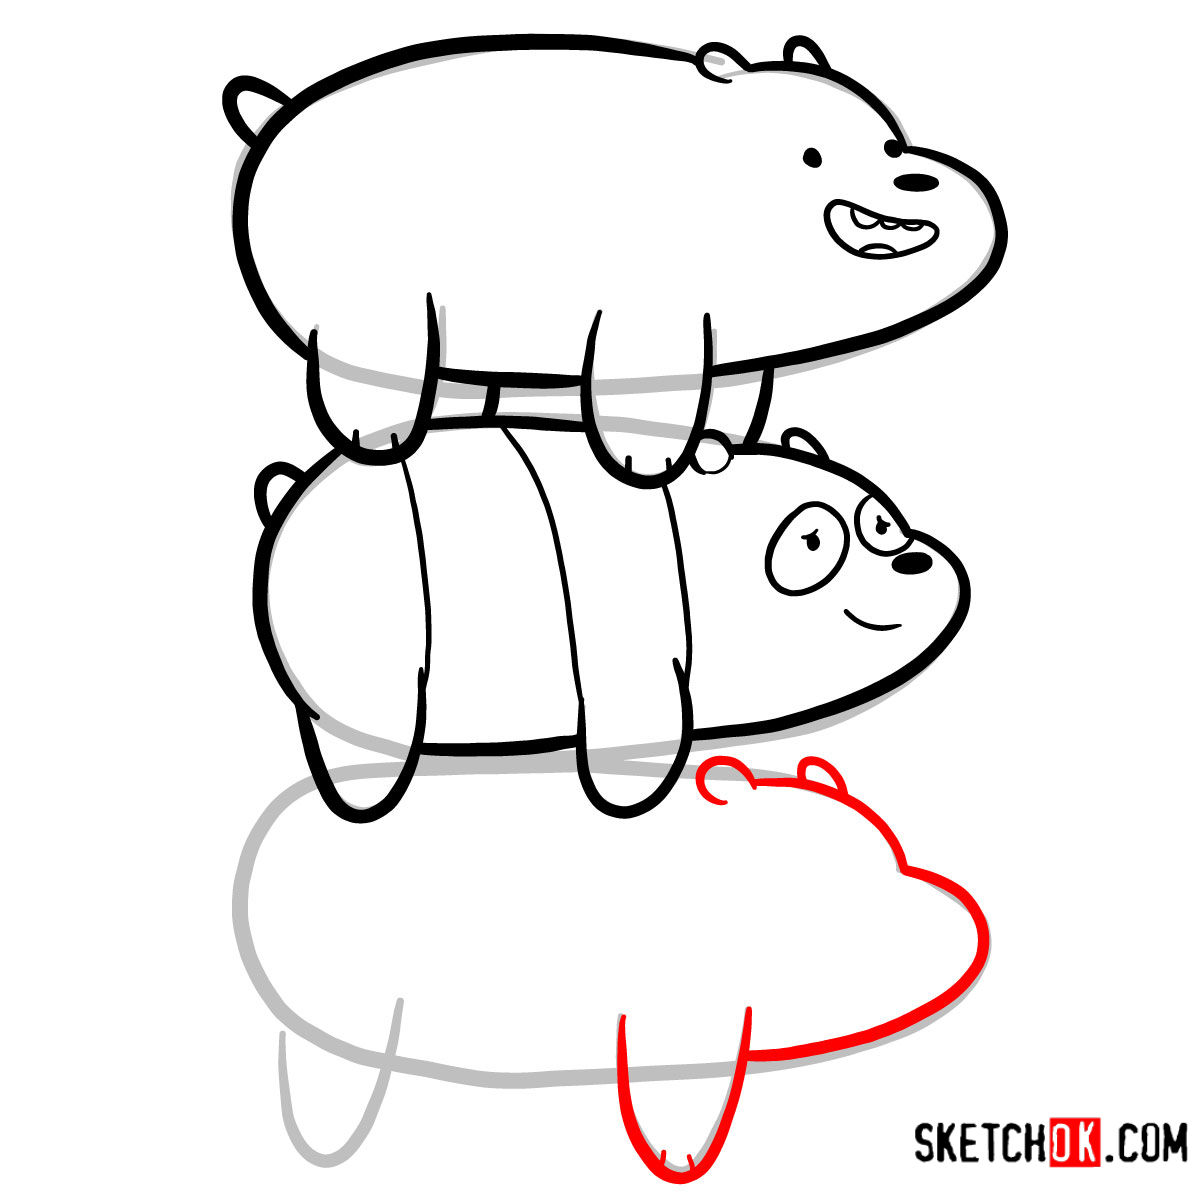 How to draw the bears standing on each others back | We Bare Bears - step 11